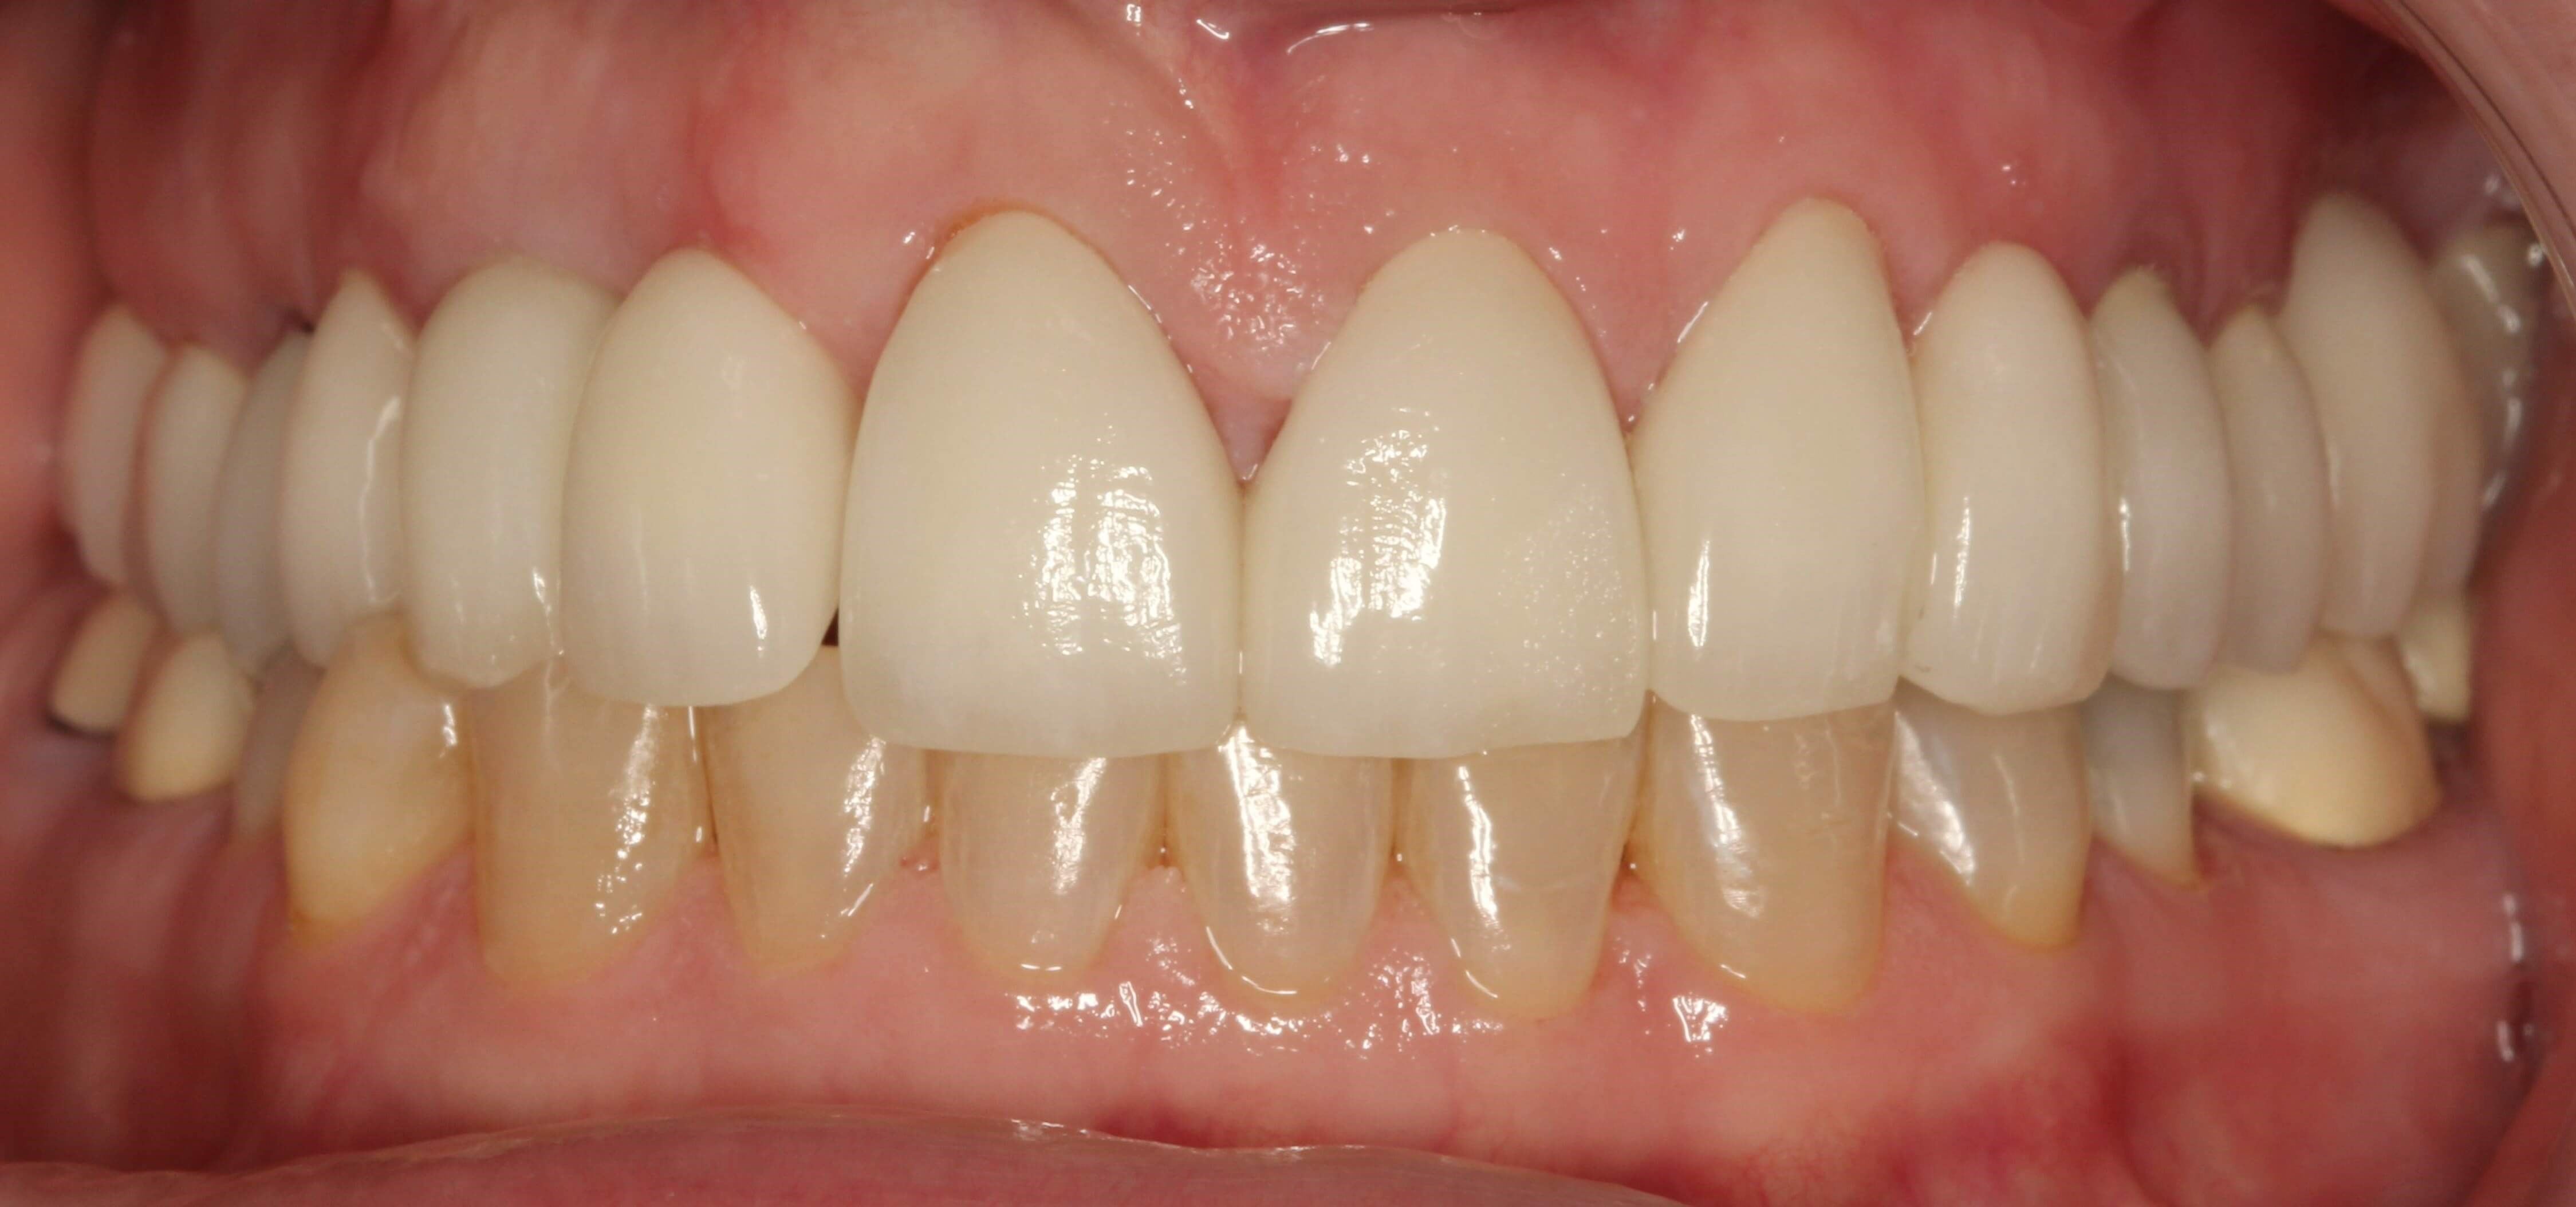 Porcelain Crowns and Implants After